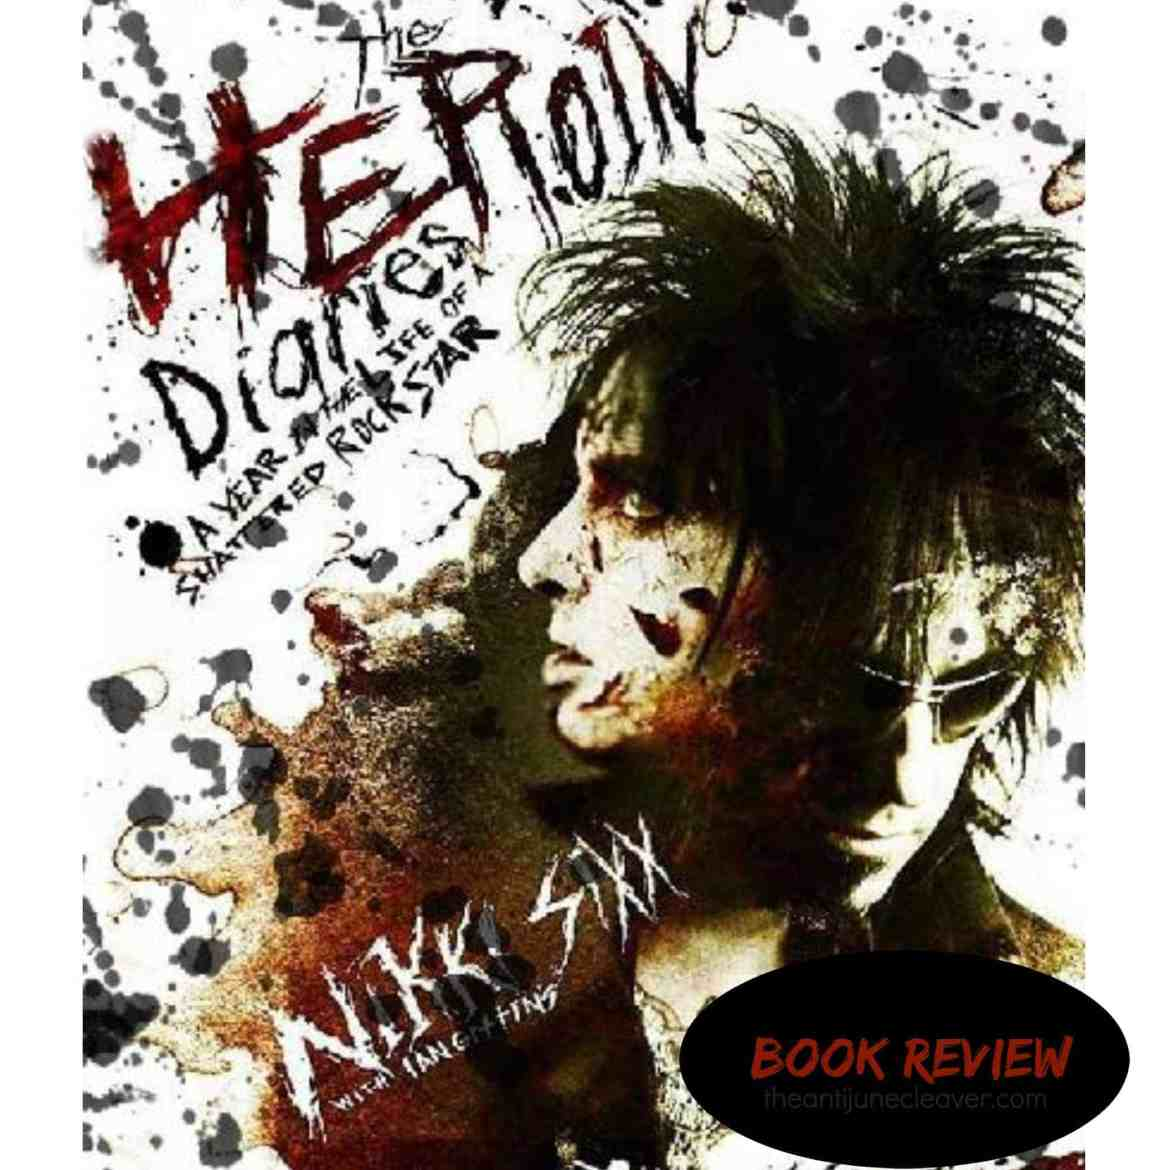 Book review: The Heroin Diaries by Nikki Sixx